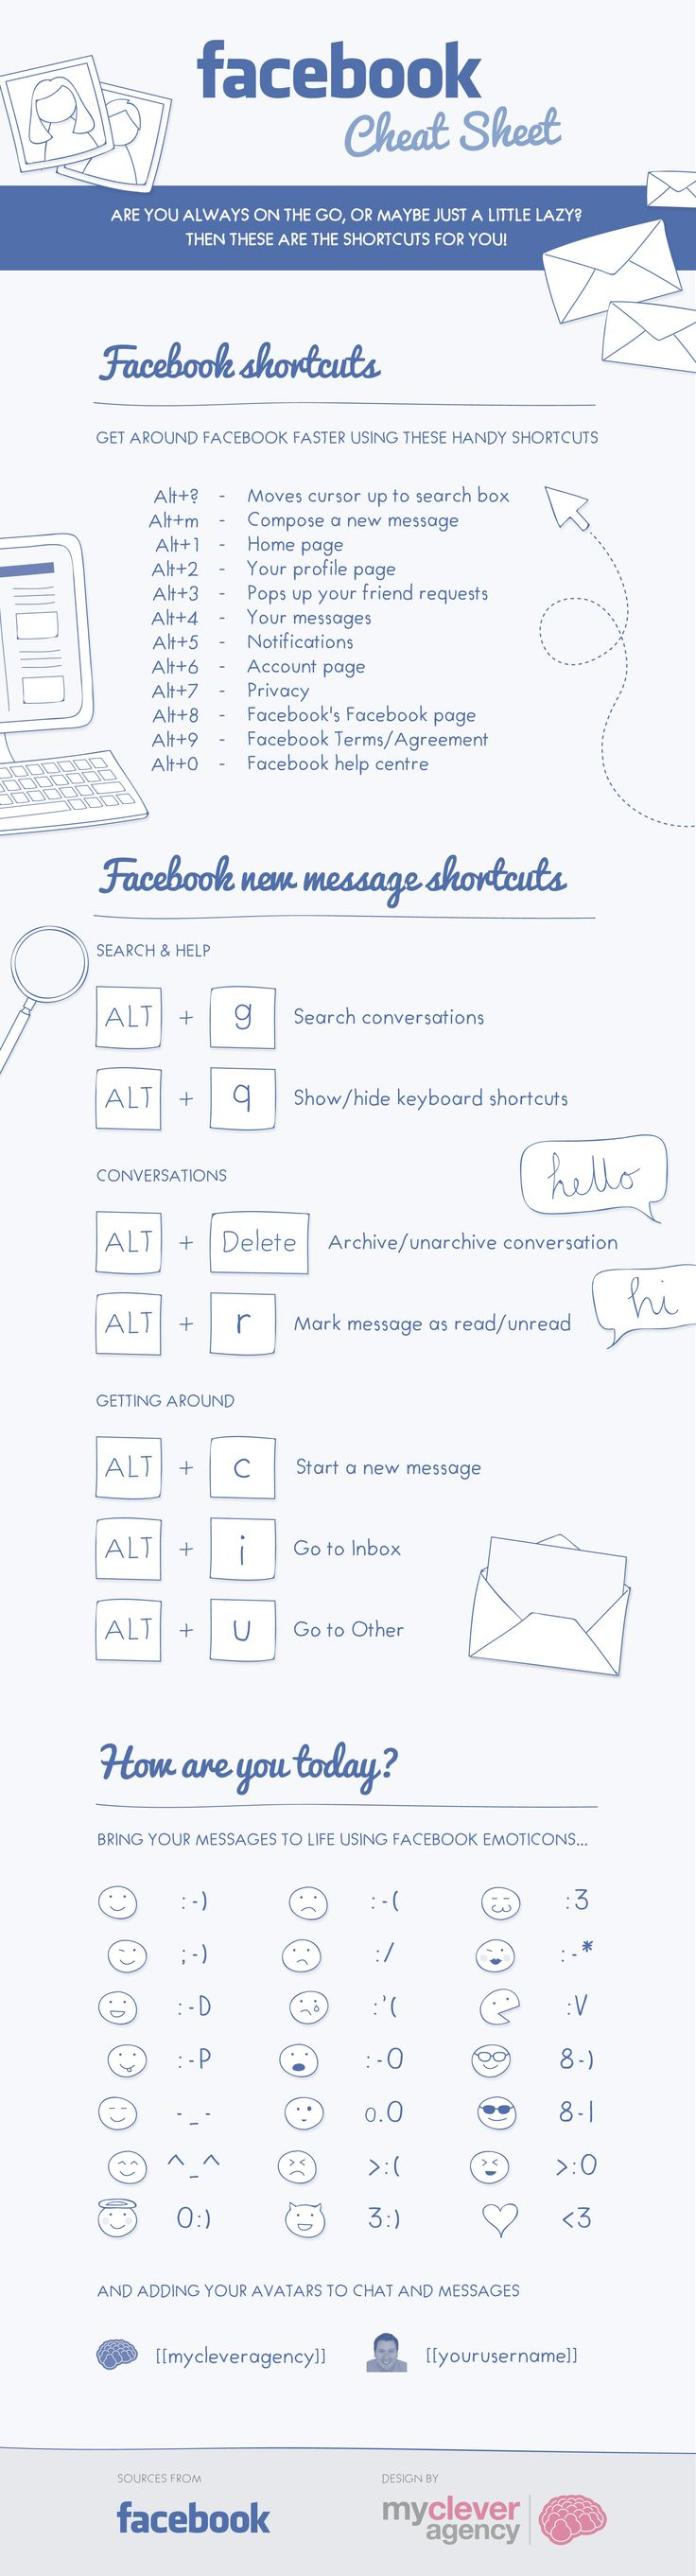 50 best Cheat sheets images on Pinterest